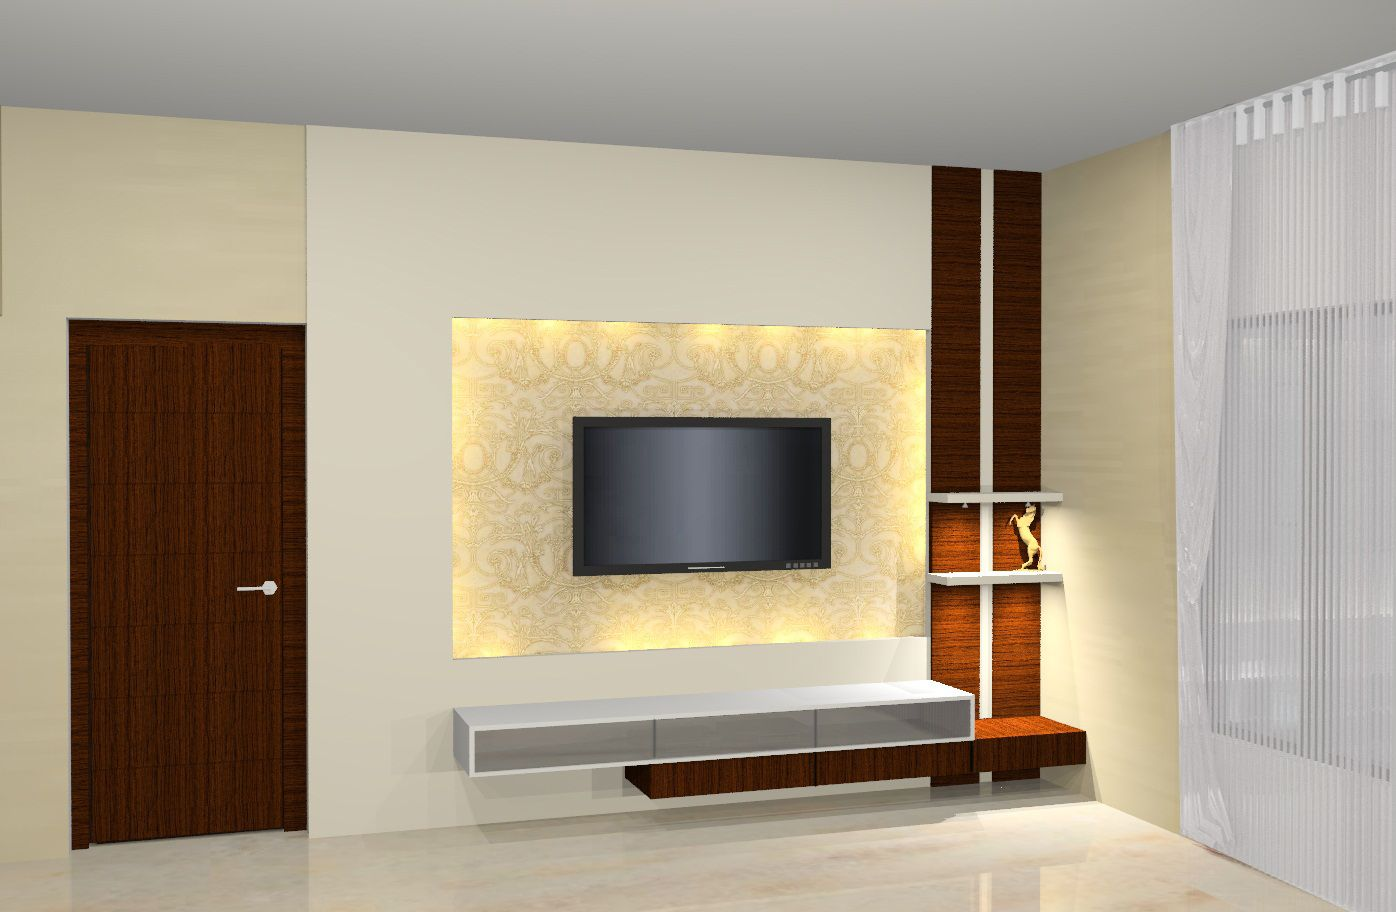 TV Unit designs Upper Family More TV